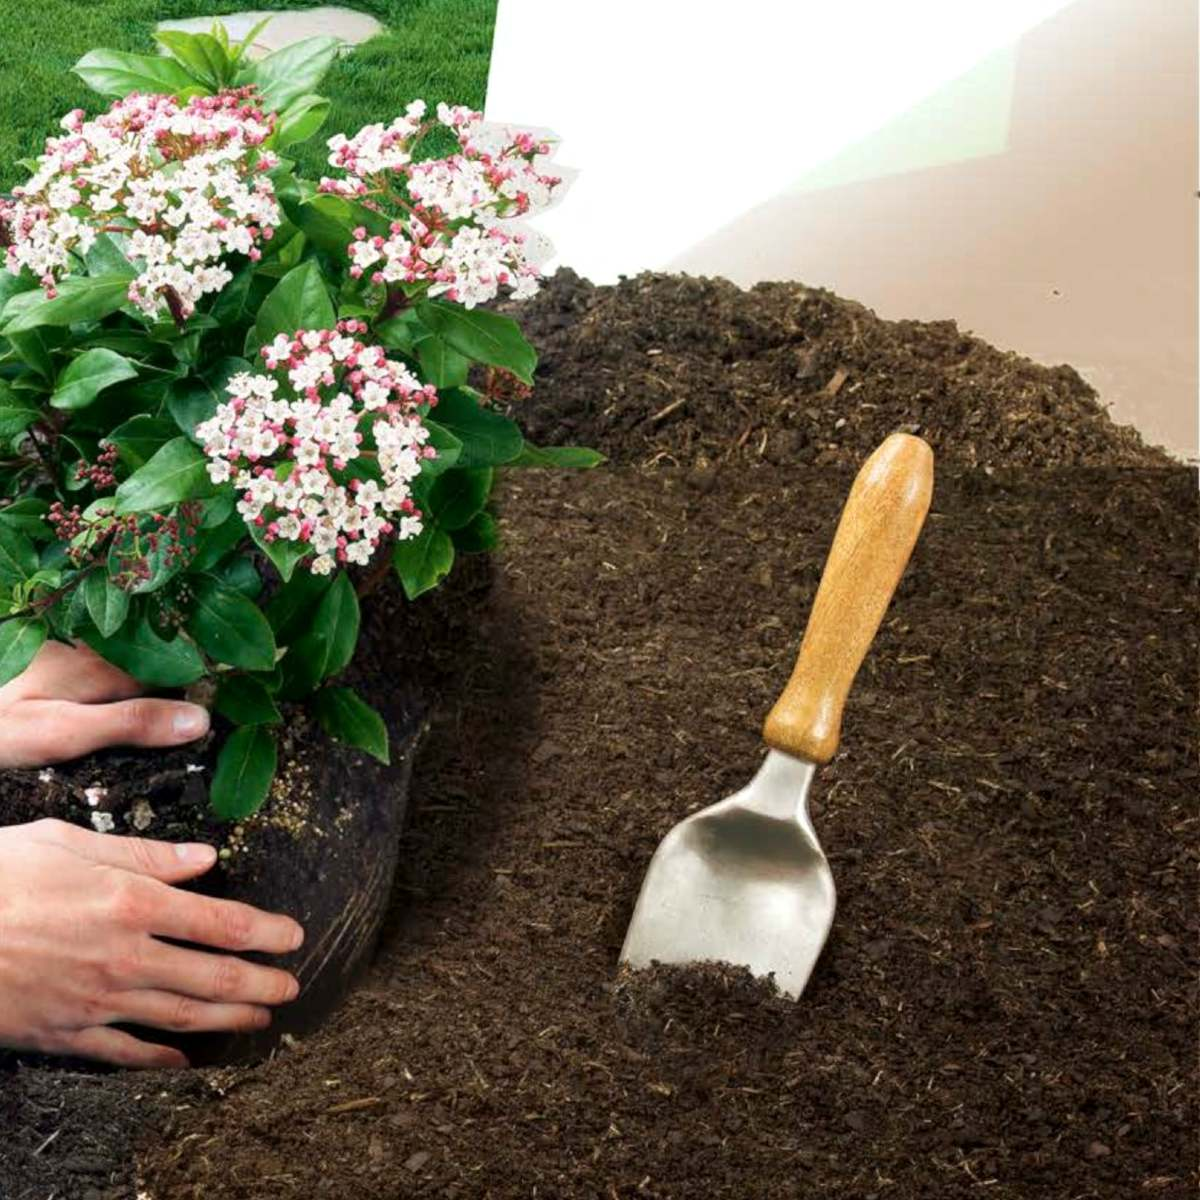 Soil mix or compost, what is the difference?